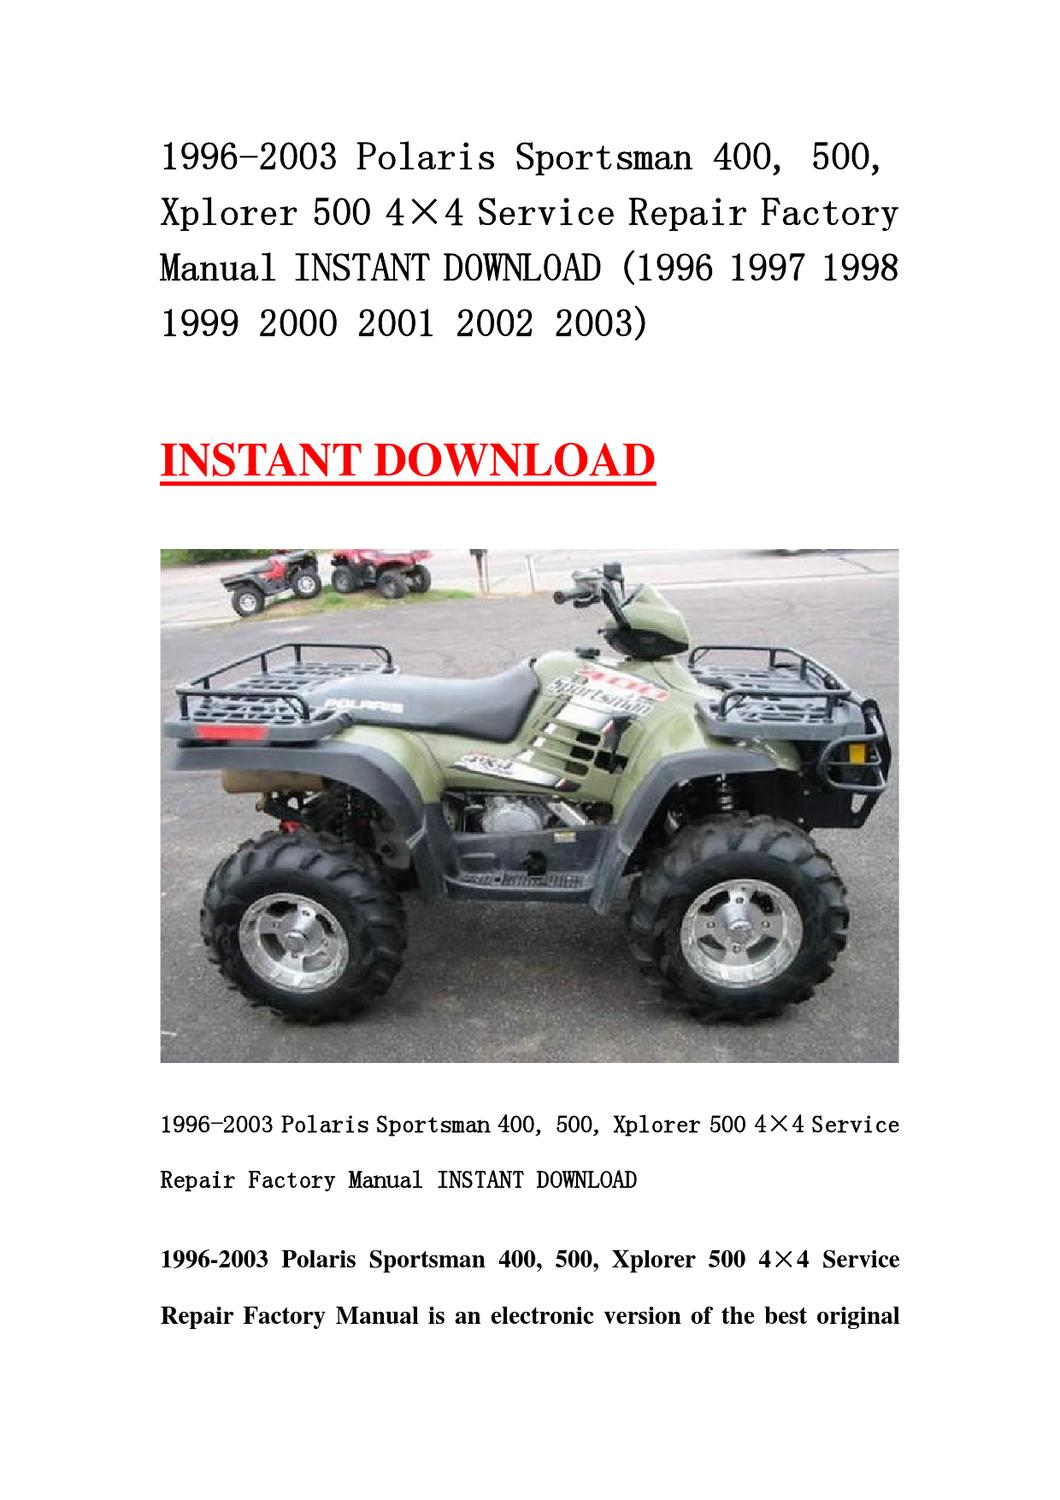 1999 Polaris Scrambler 400 4 Owners Manual Ladull Org